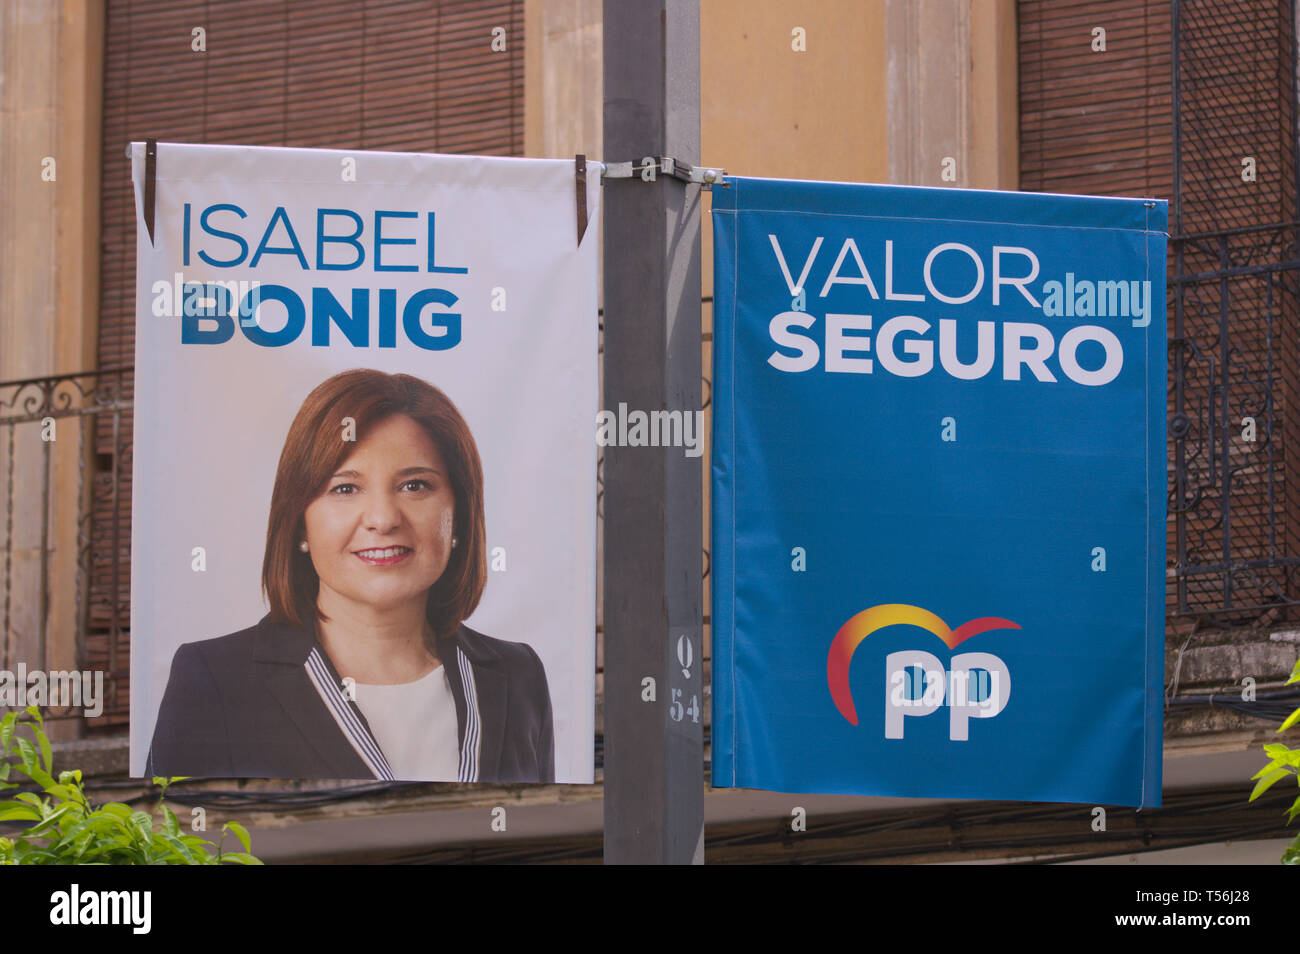 2019. April. Spain. Banners of electoral propaganda 'Popular Party' for elections to Congress where the portrait of his candidate for the presidency o - Stock Image